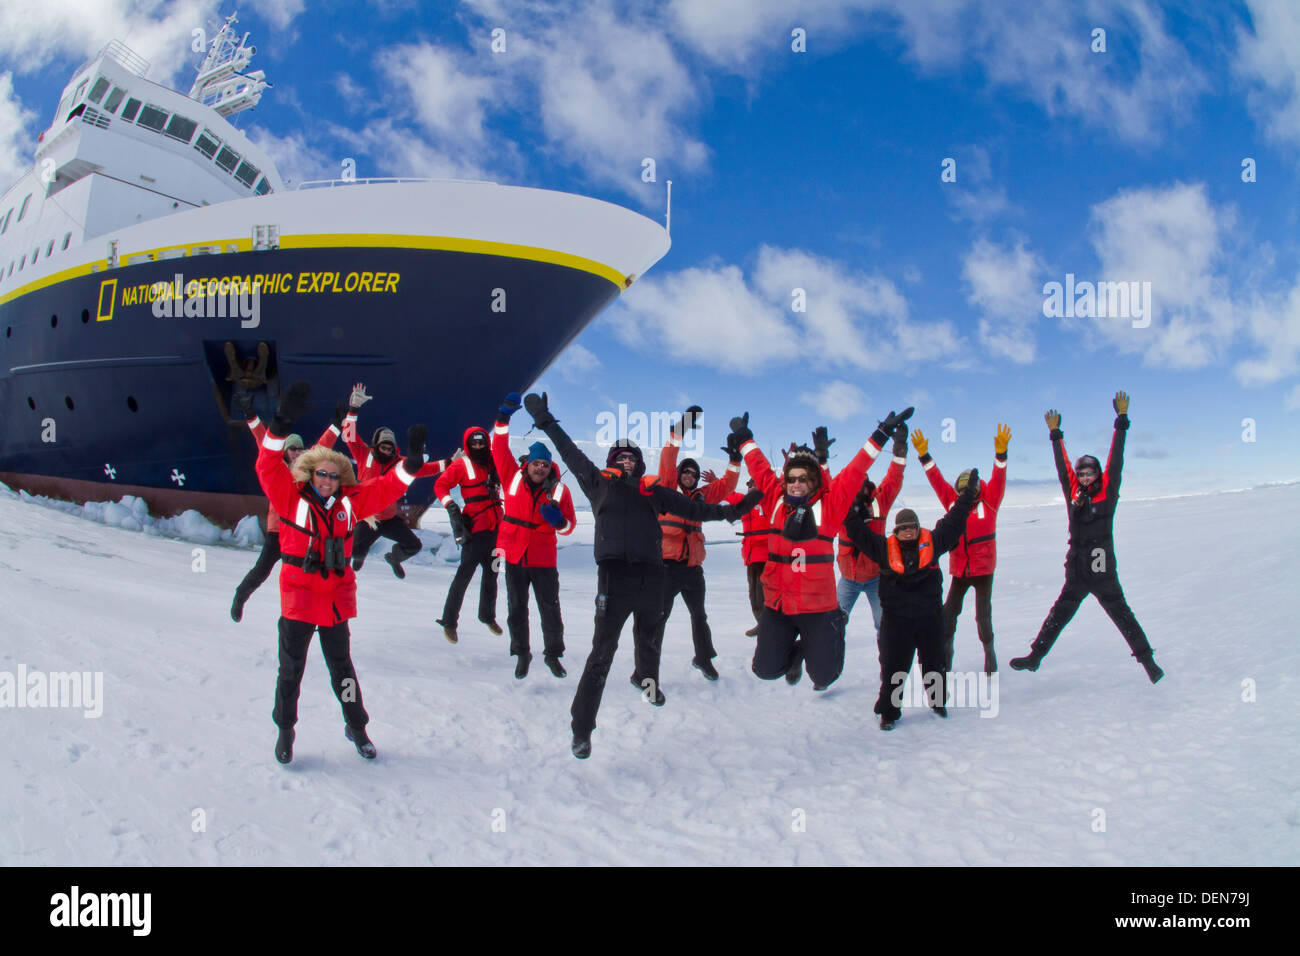 Staff from the Lindblad Expedition ship National Geographic Explorer shown here is the entire staff working in Antarctica - Stock Image